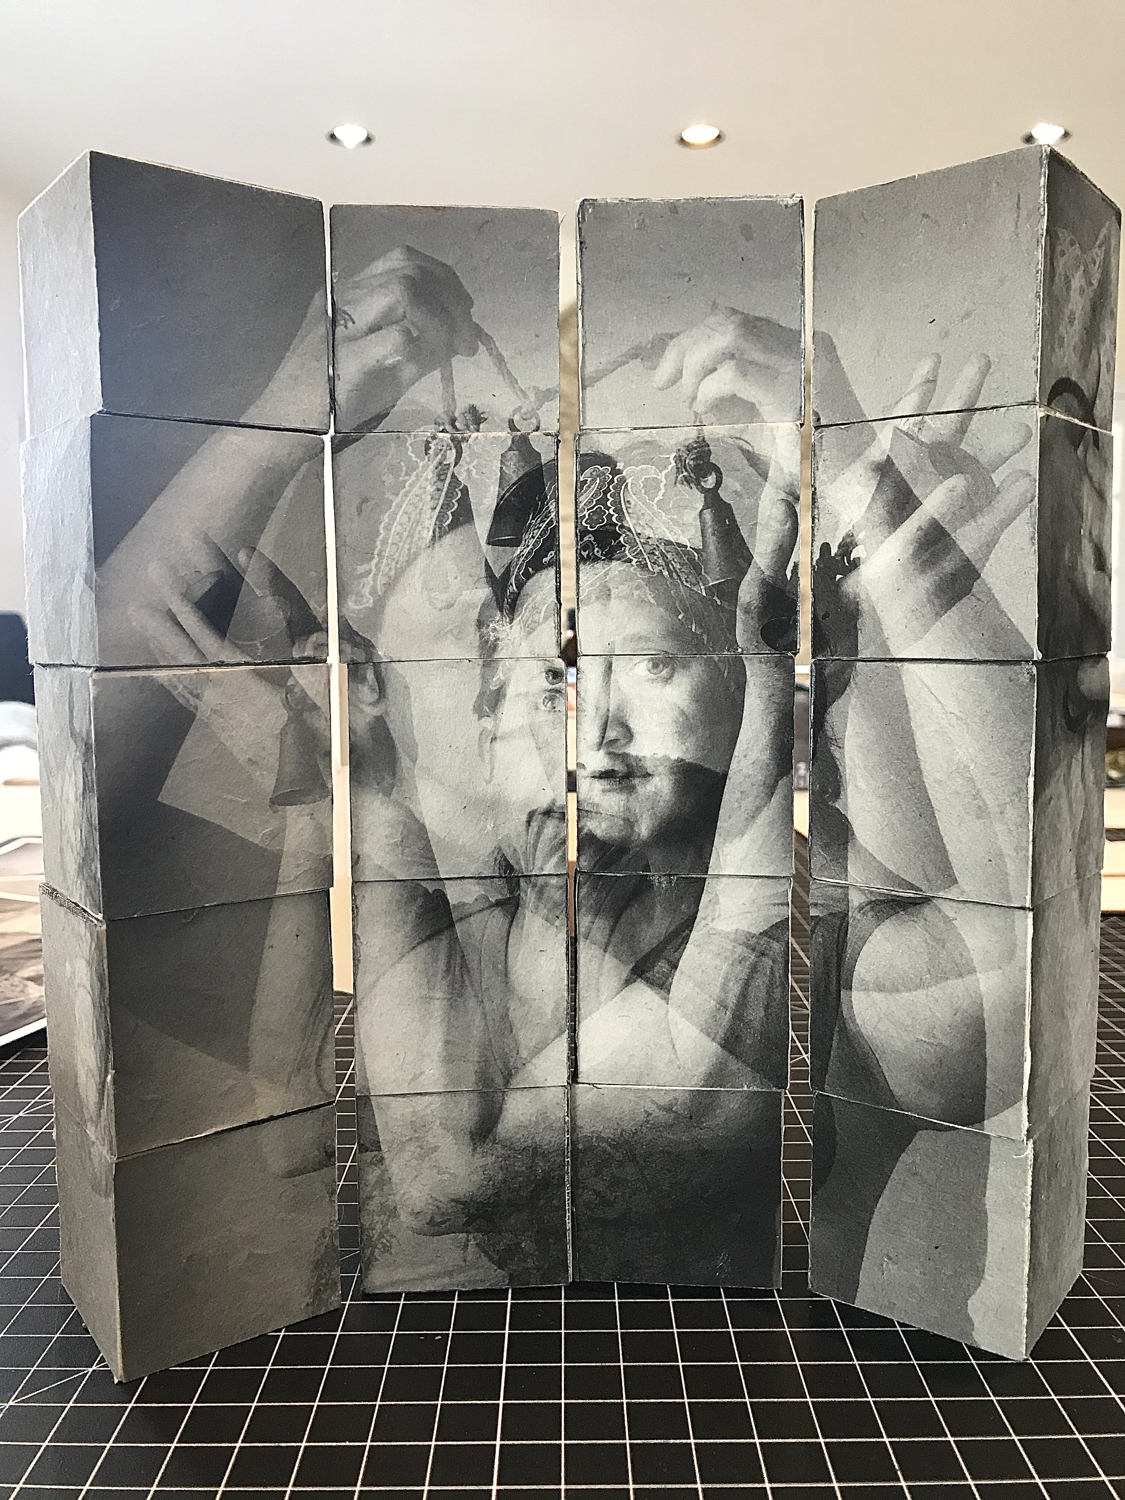 """Senses in Animate Project, 8""""x10' table top installation. Norwegian Pine with Photographic Images printed on Lohkta Paper, PVA, 6 sides of imagery each making a new puzzle image of a portrait from the series."""